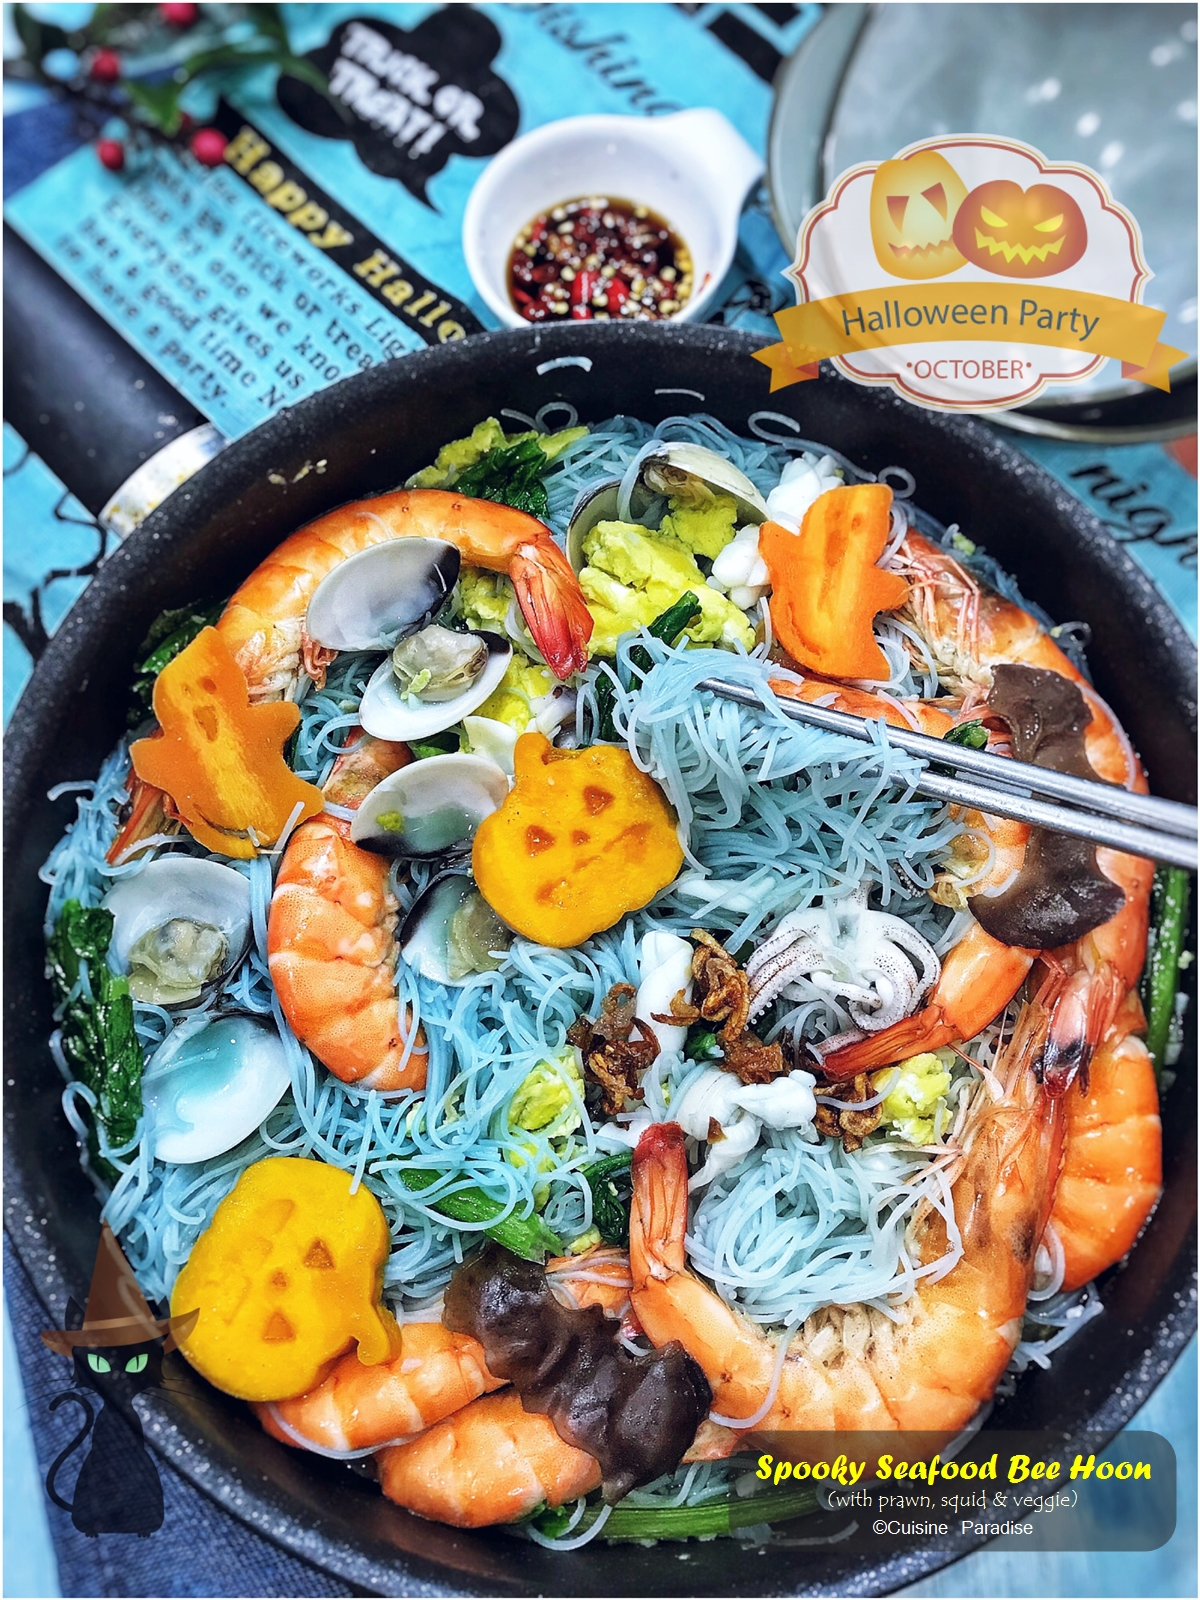 Cuisine paradise singapore food blog recipes reviews and travel this year our halloween themed recipes include creepy purple blue noodle and ghoulishly curry rice which can be done forumfinder Choice Image